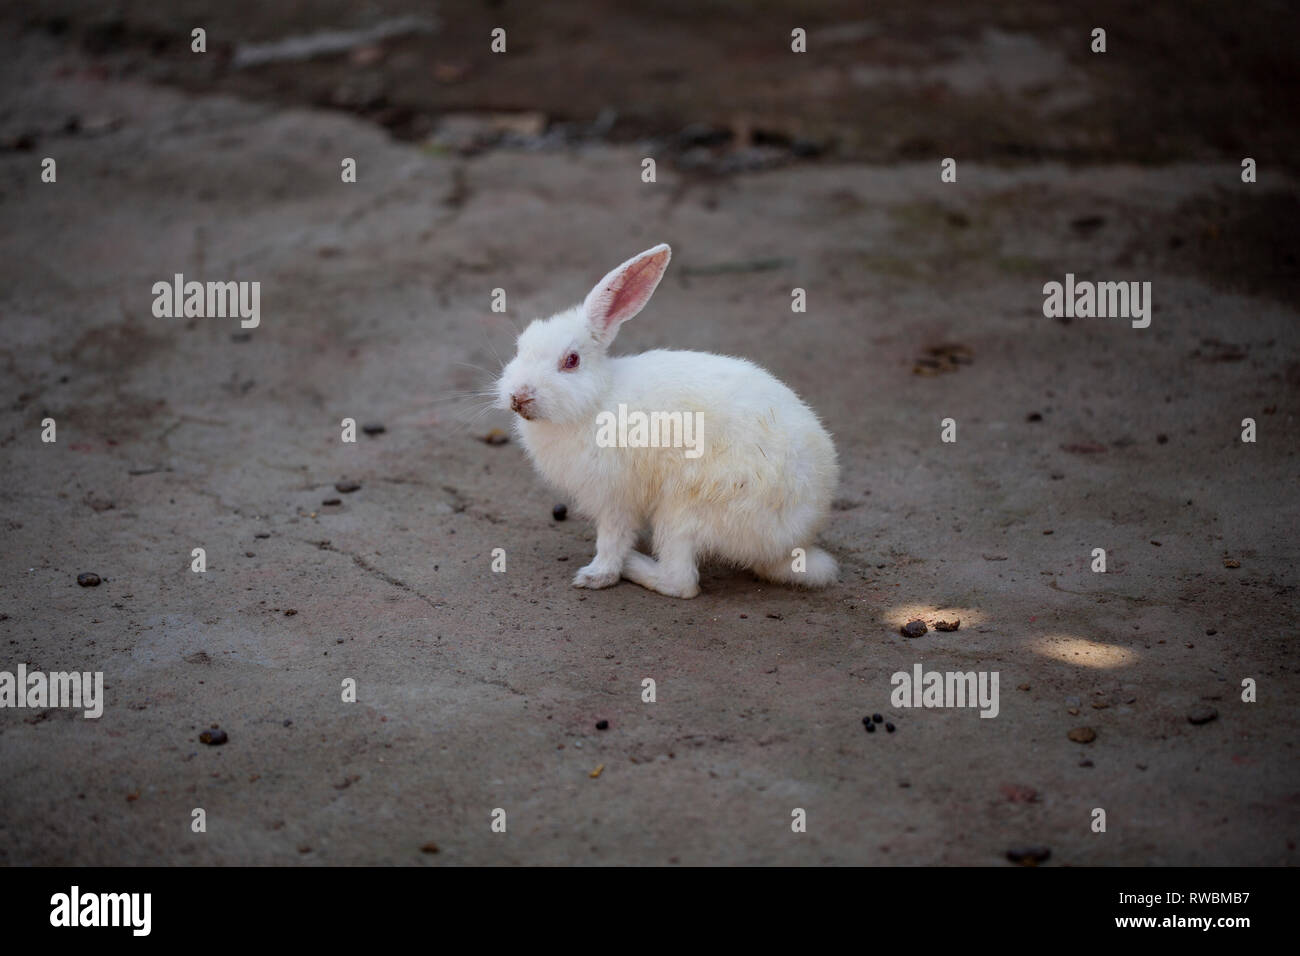 A white rabbit on Ross Island. They are quite tame and easy to spot. - Stock Image